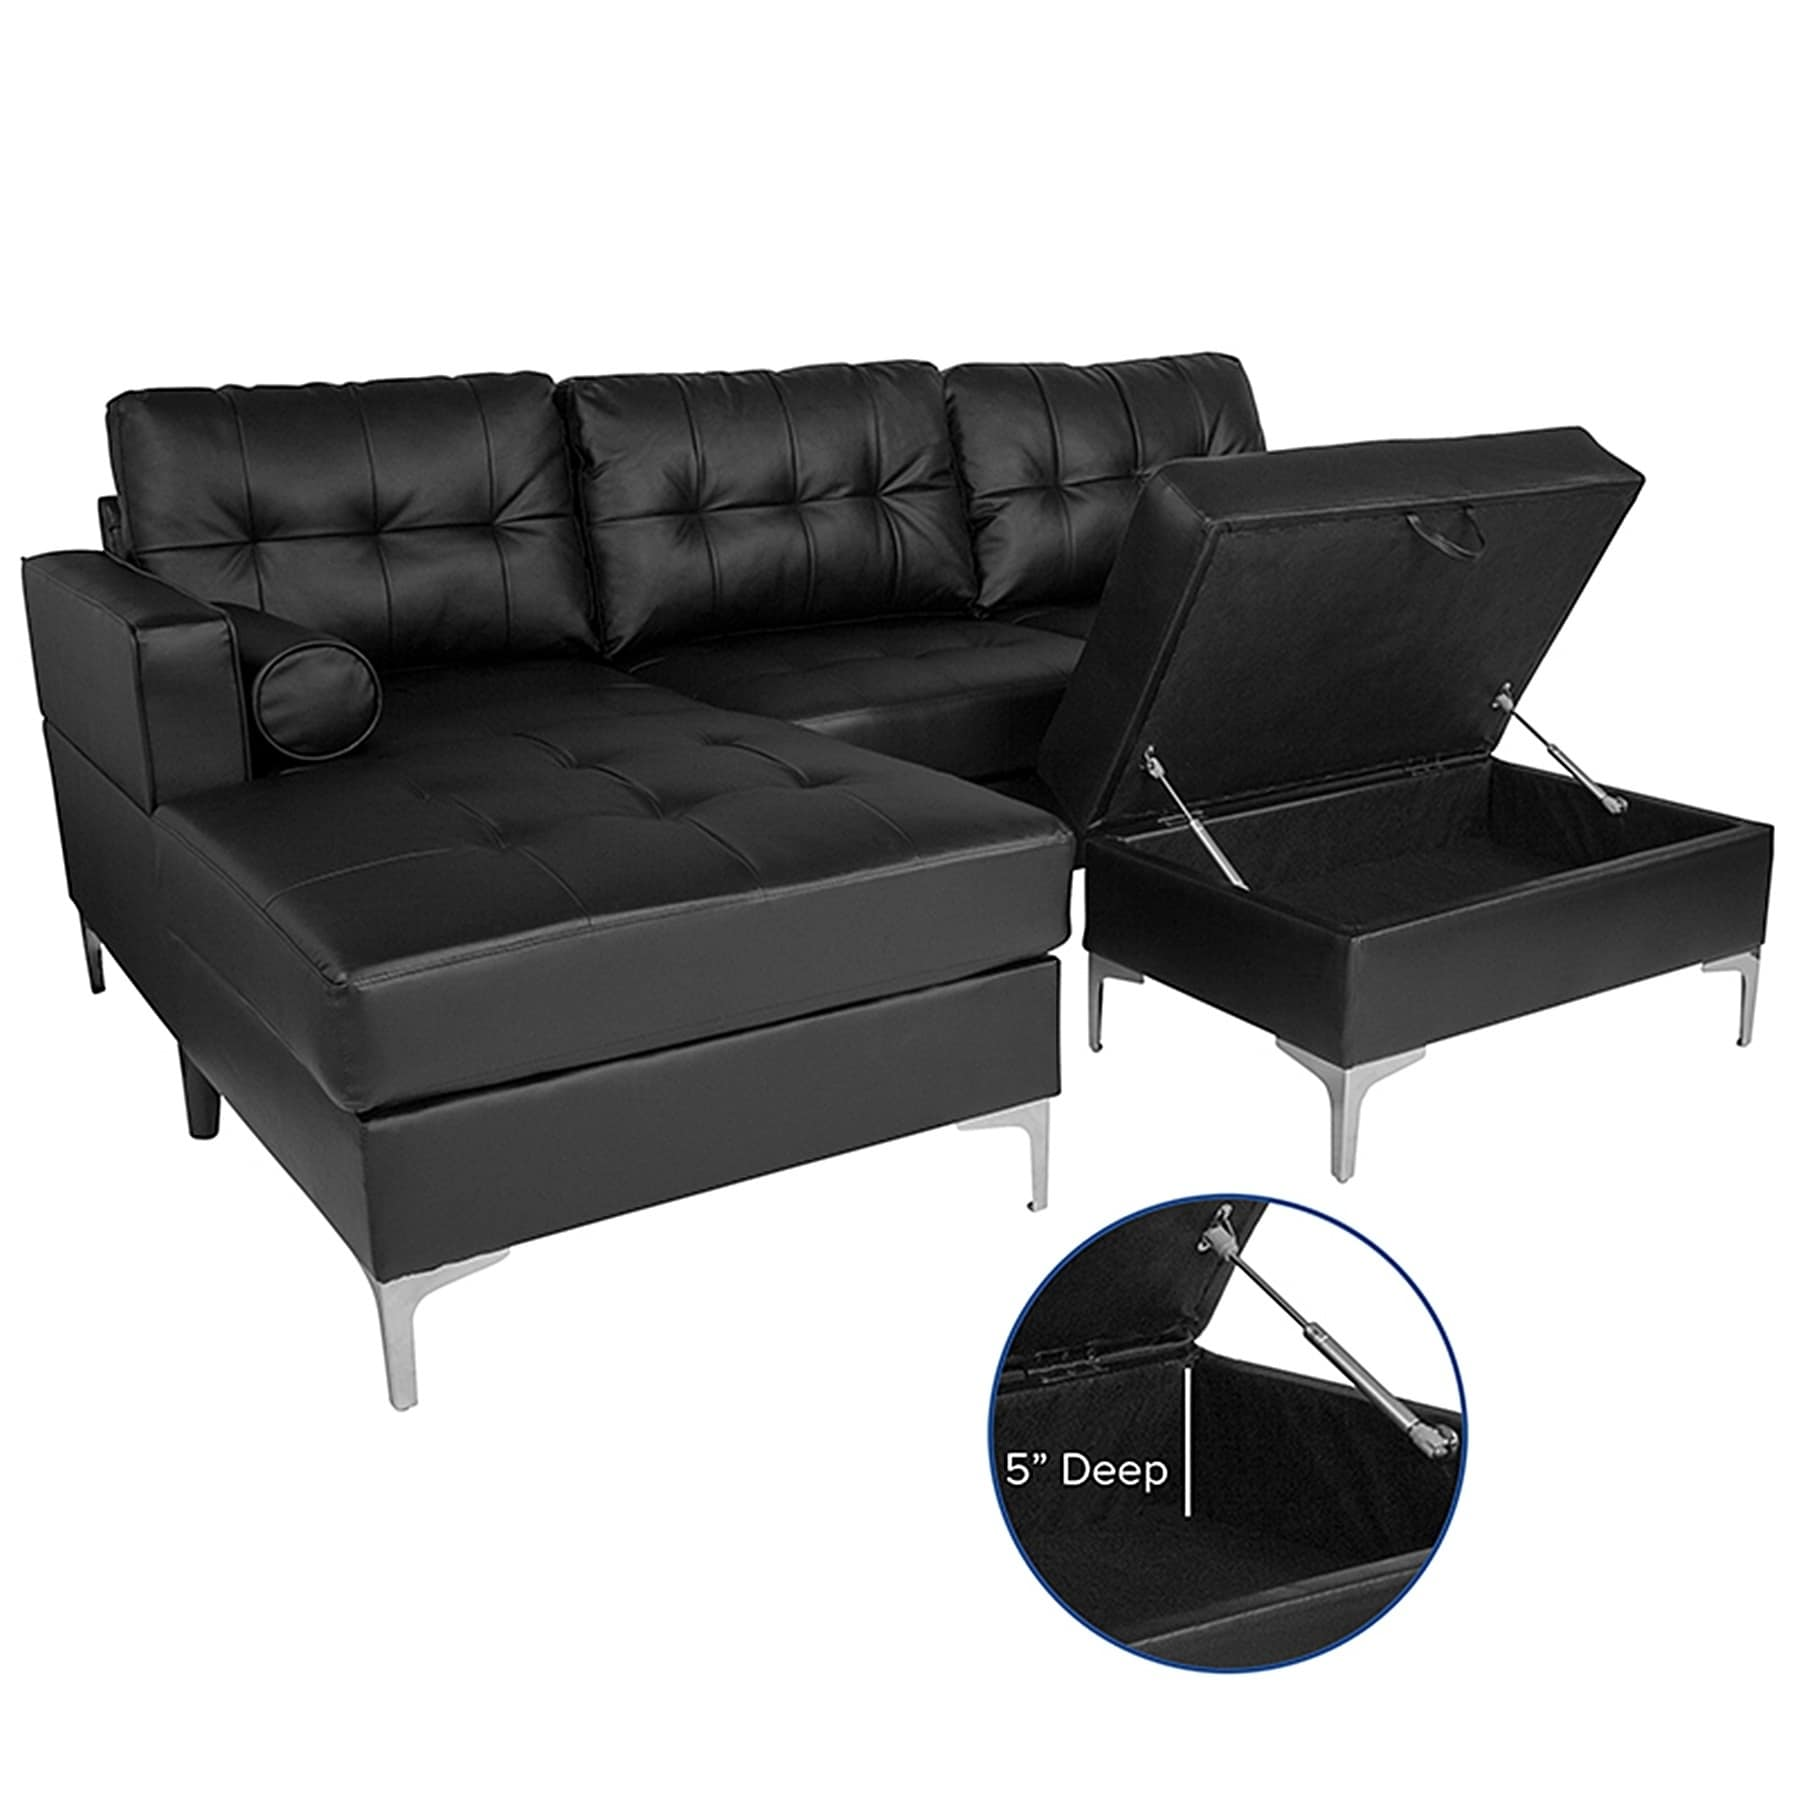 shop bellmore 3 piece black leather sectional sofa with left facing rh overstock com  leather sectional sofa bed with reversible chaise - black ii